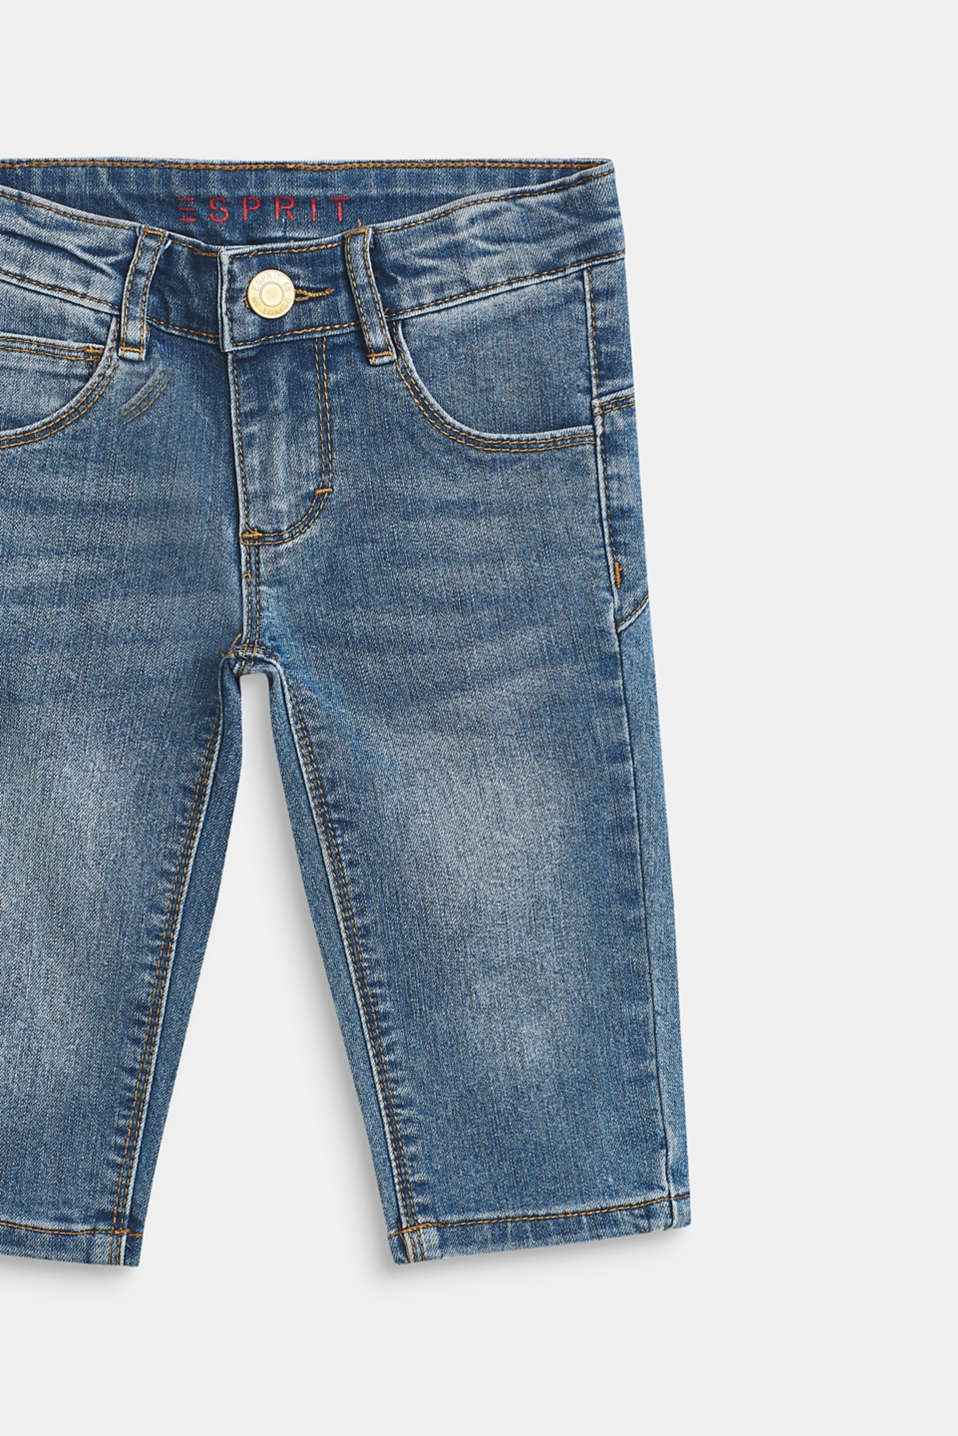 Stretchy capri-length jeans, adjustable waistband, MEDIUM WASH DE, detail image number 2